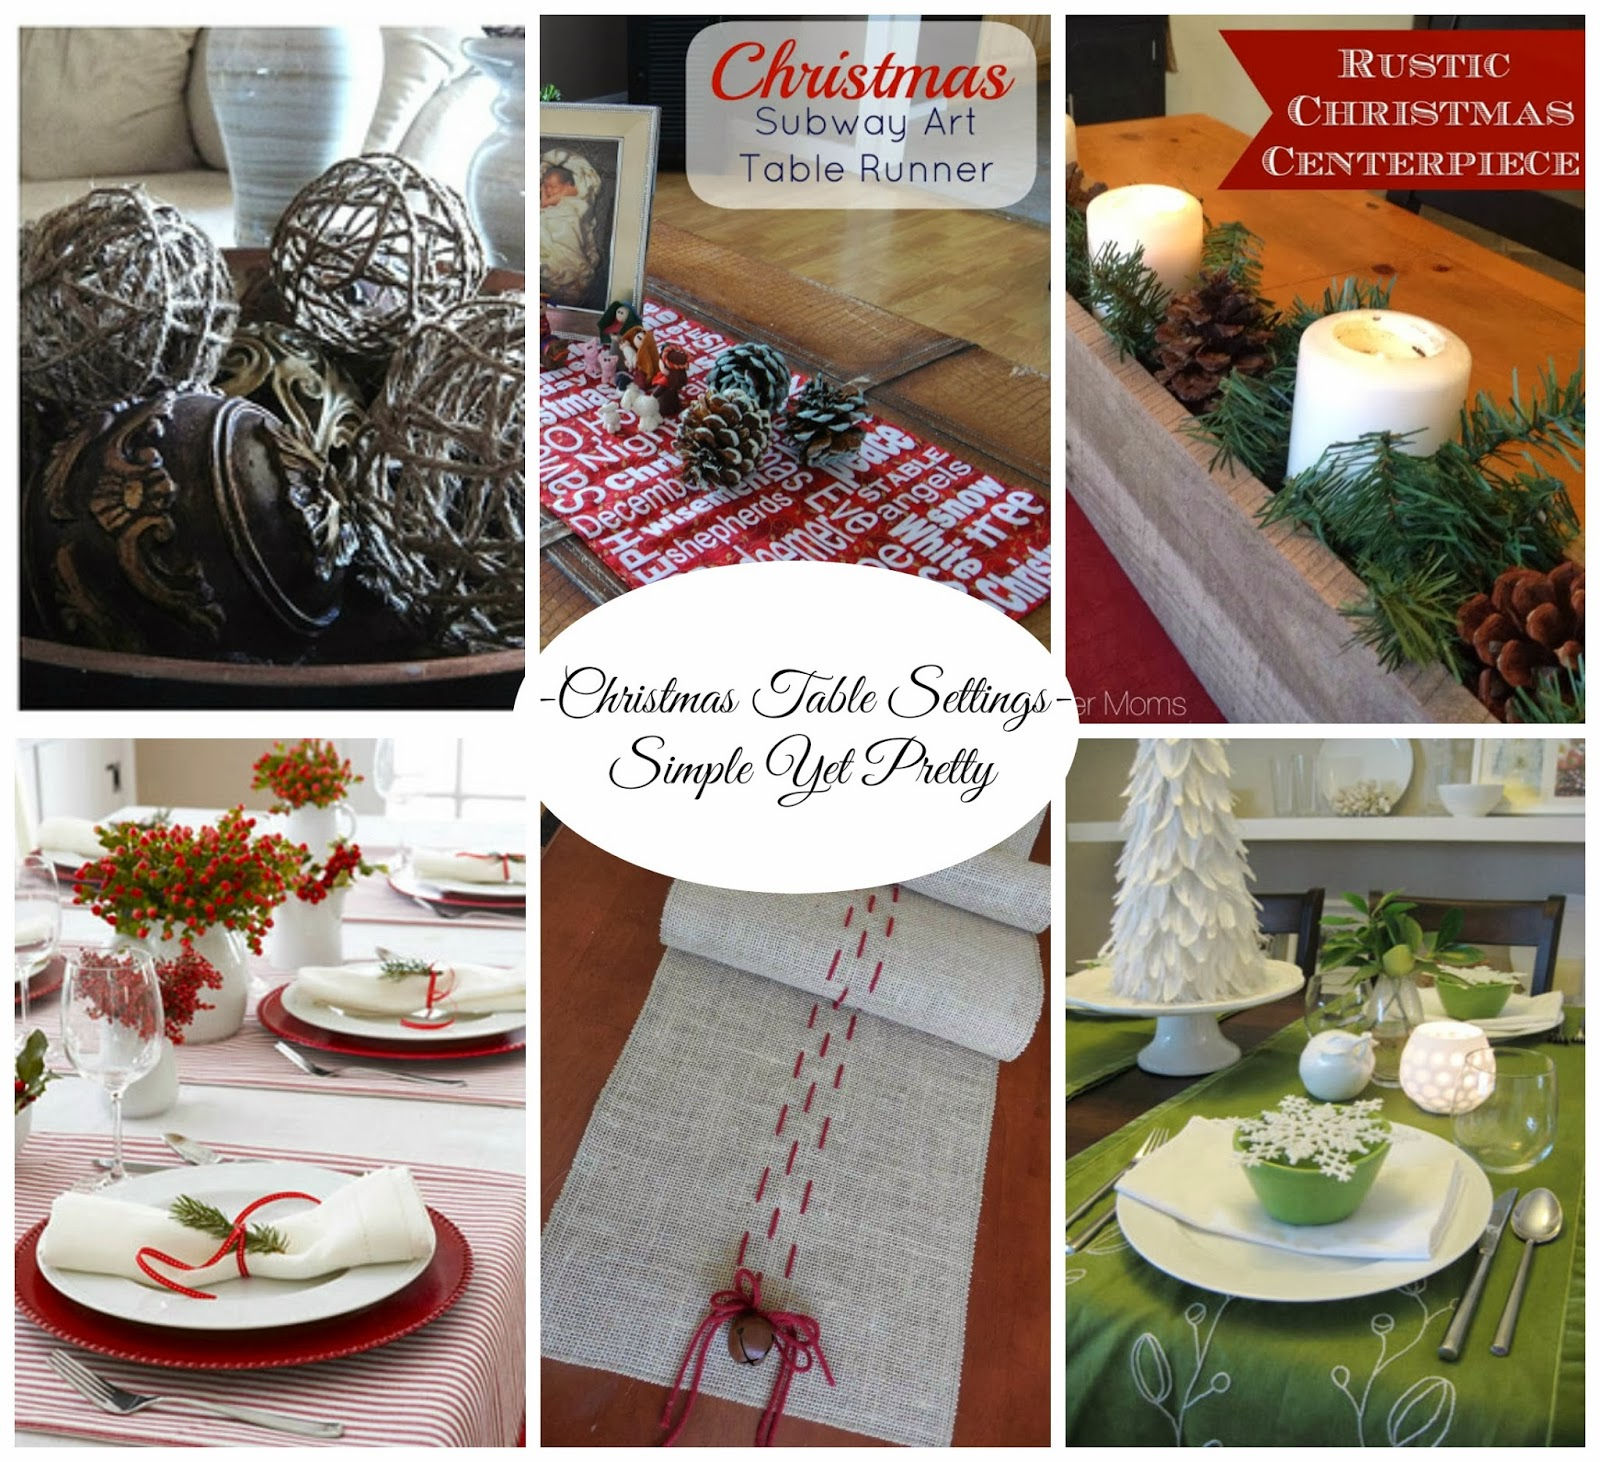 Renovating519 christmas table settings simple yet pretty - Simple christmas table settings ...